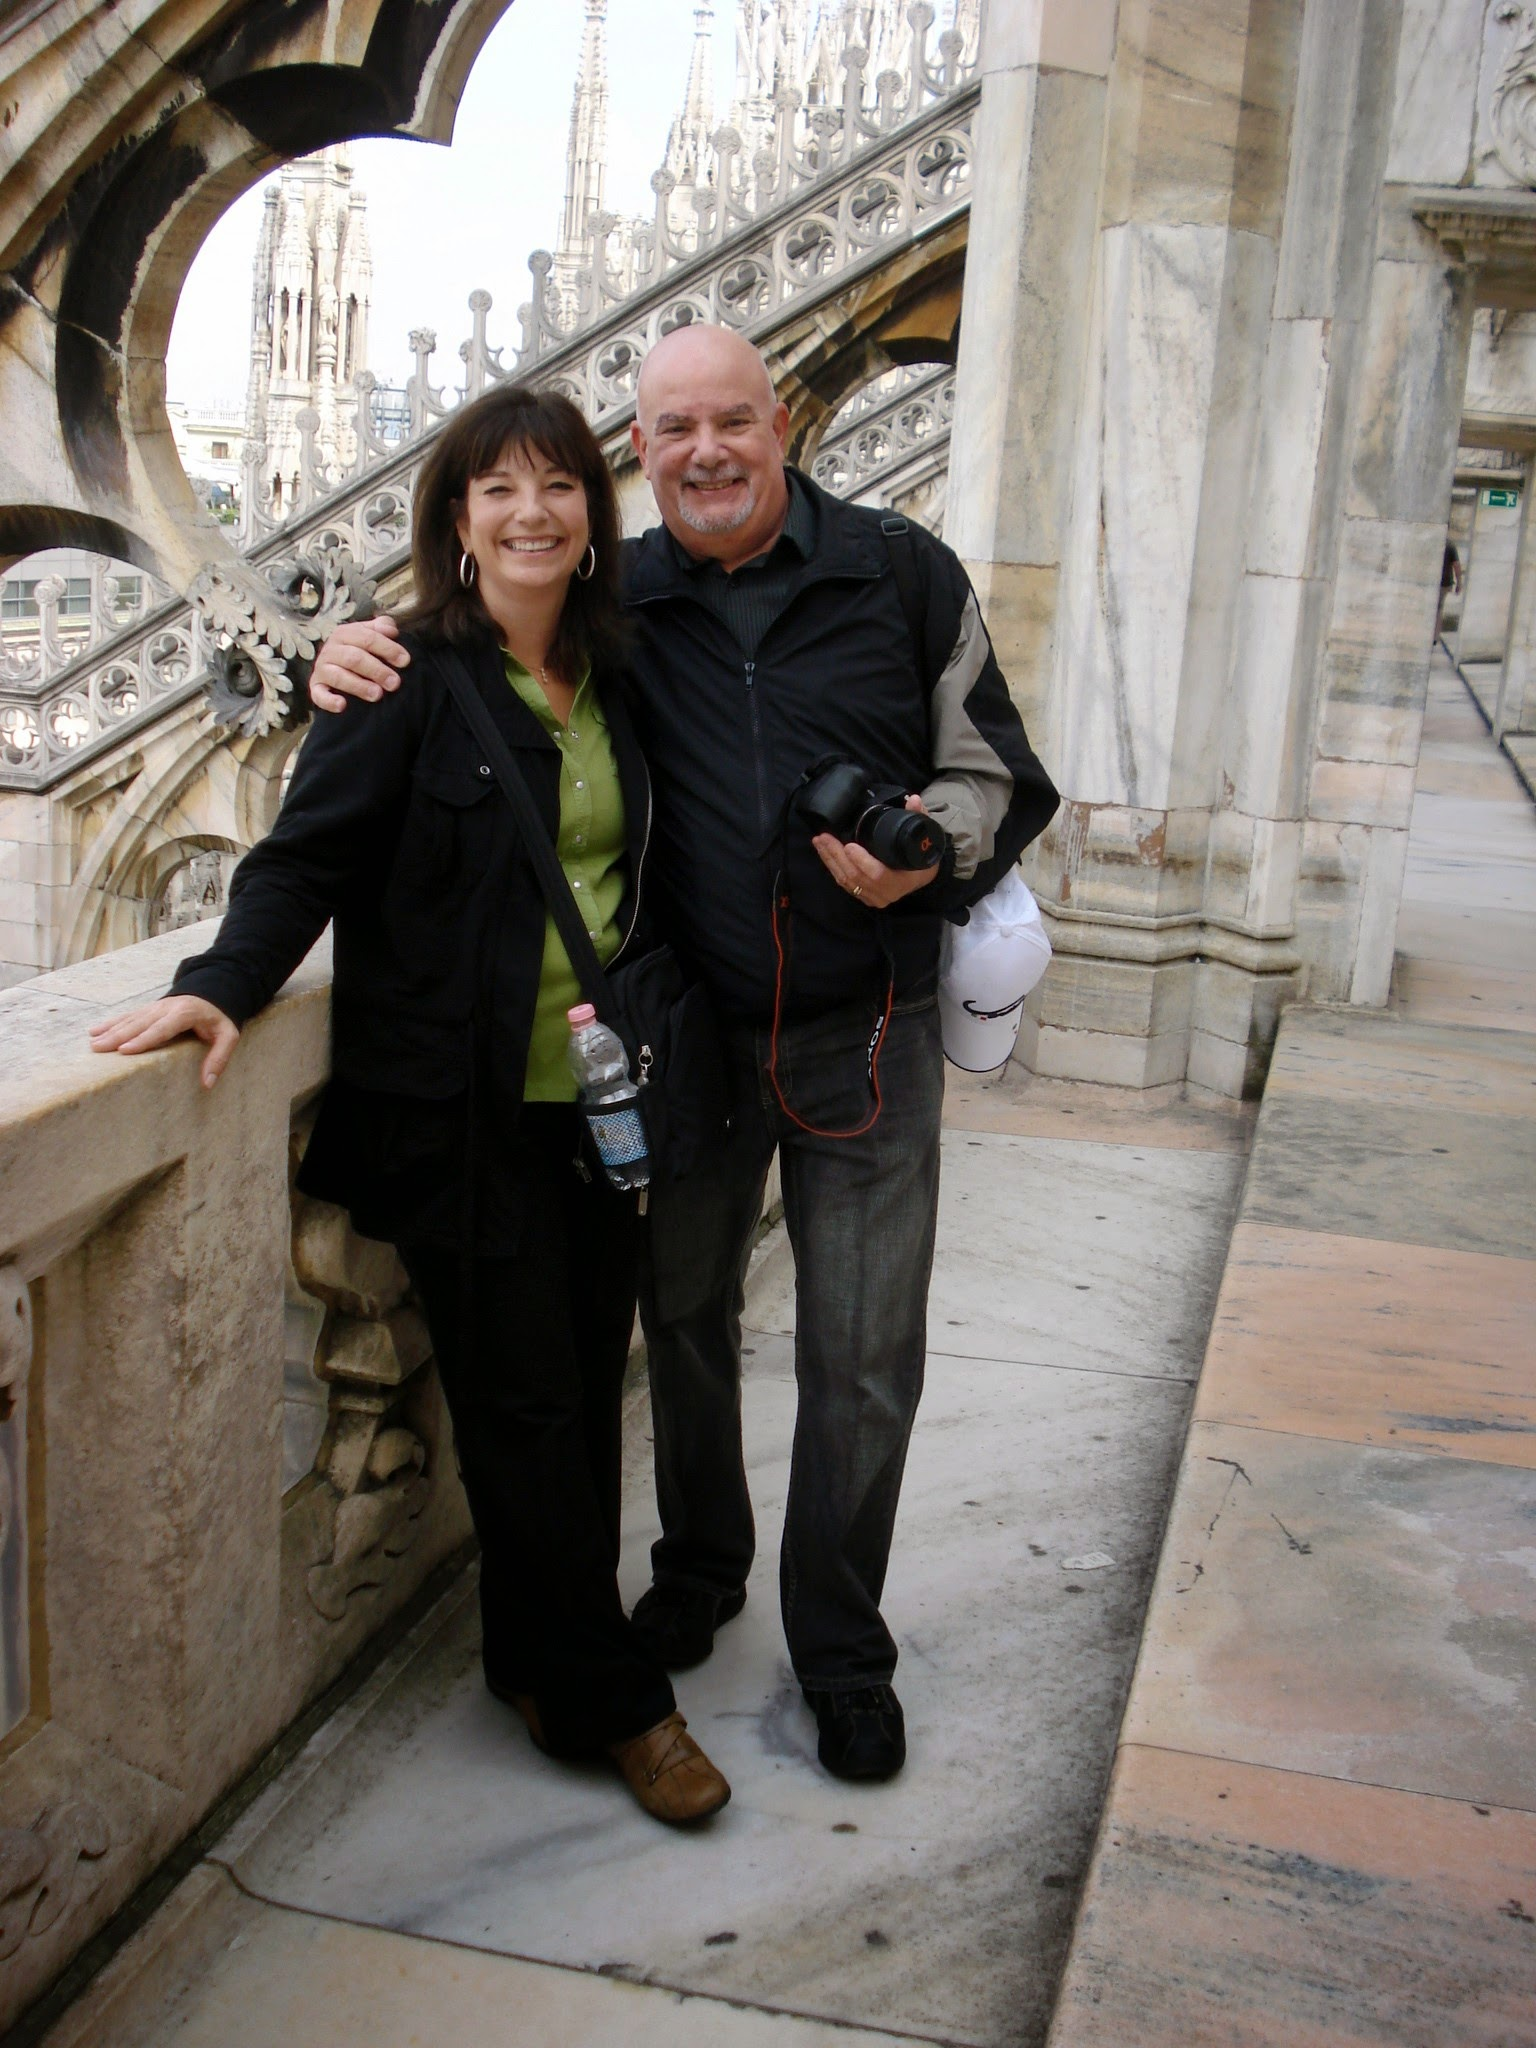 Ilene and Gary on the roof of the duomo in Milan, Italy during our 2010 adventure. ouritalianjourney.com